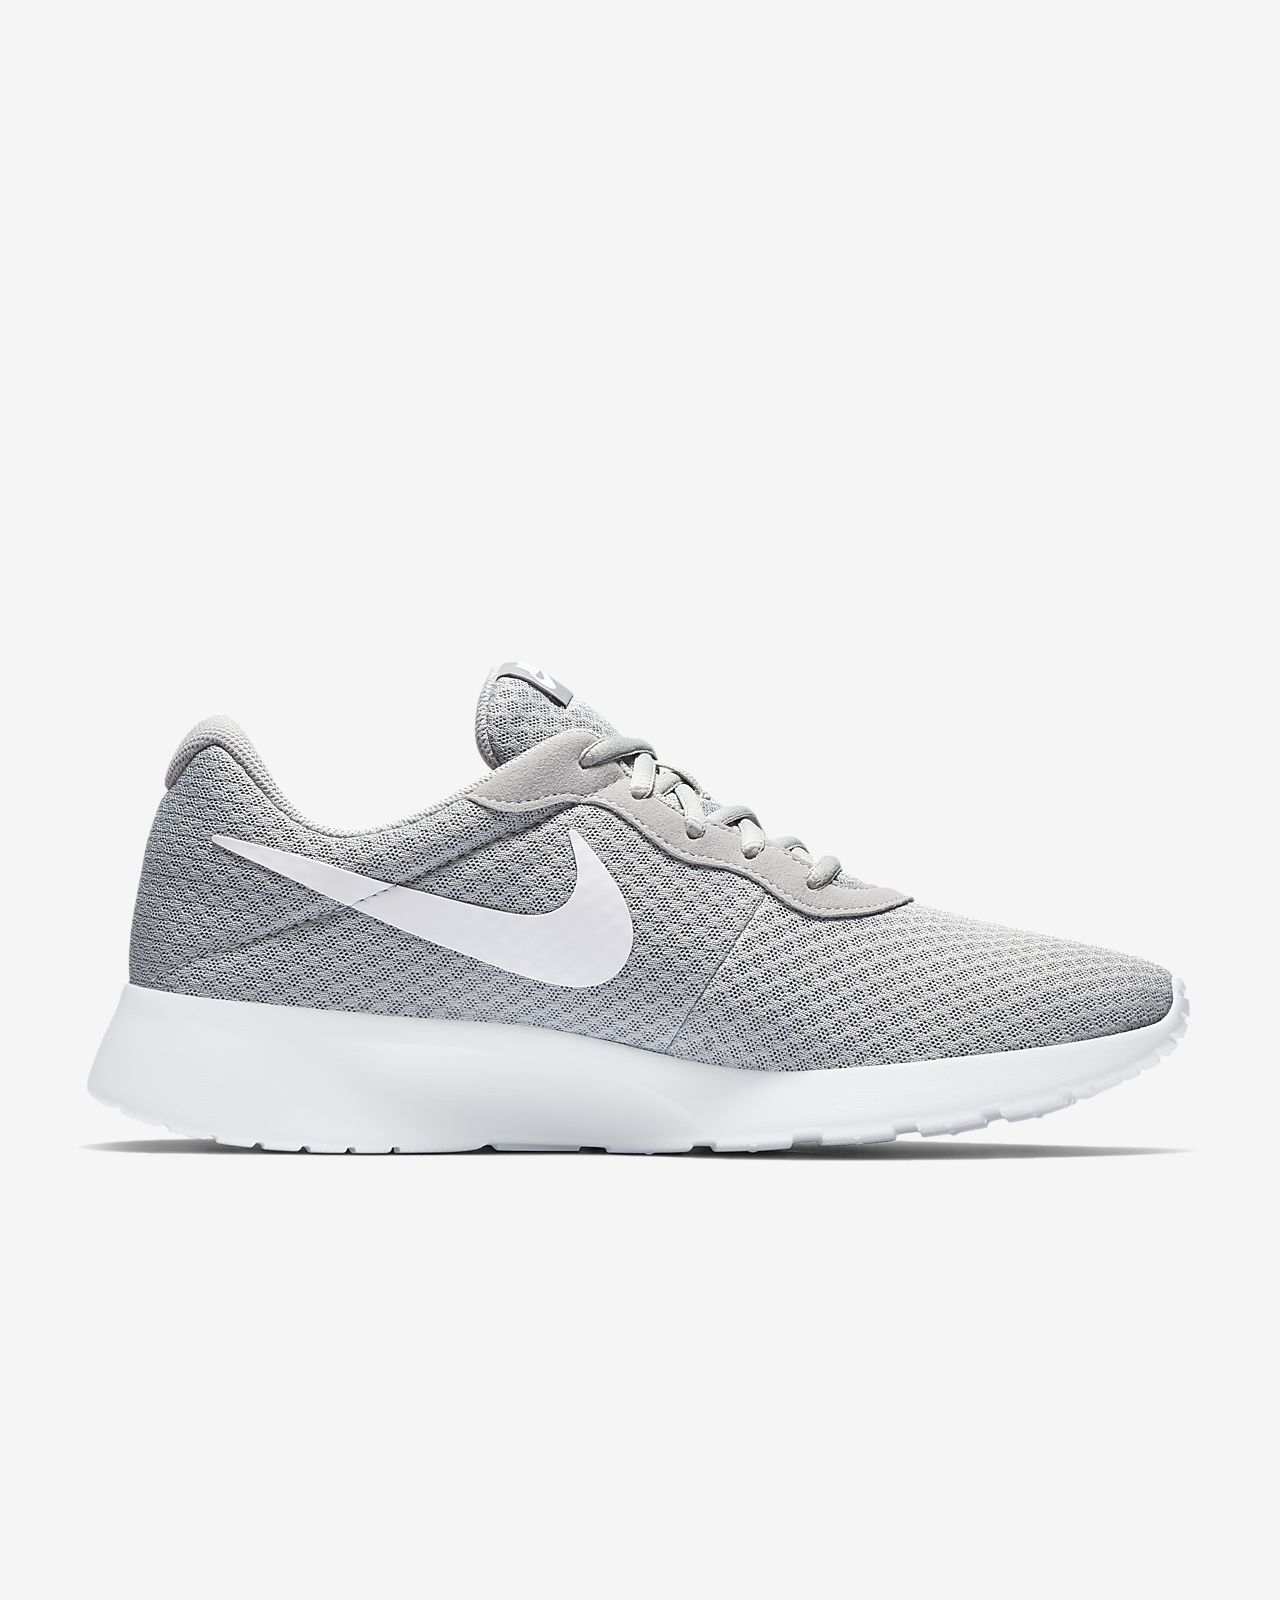 Low Resolution Nike Tanjun Men's Shoe Nike Tanjun Men's Shoe